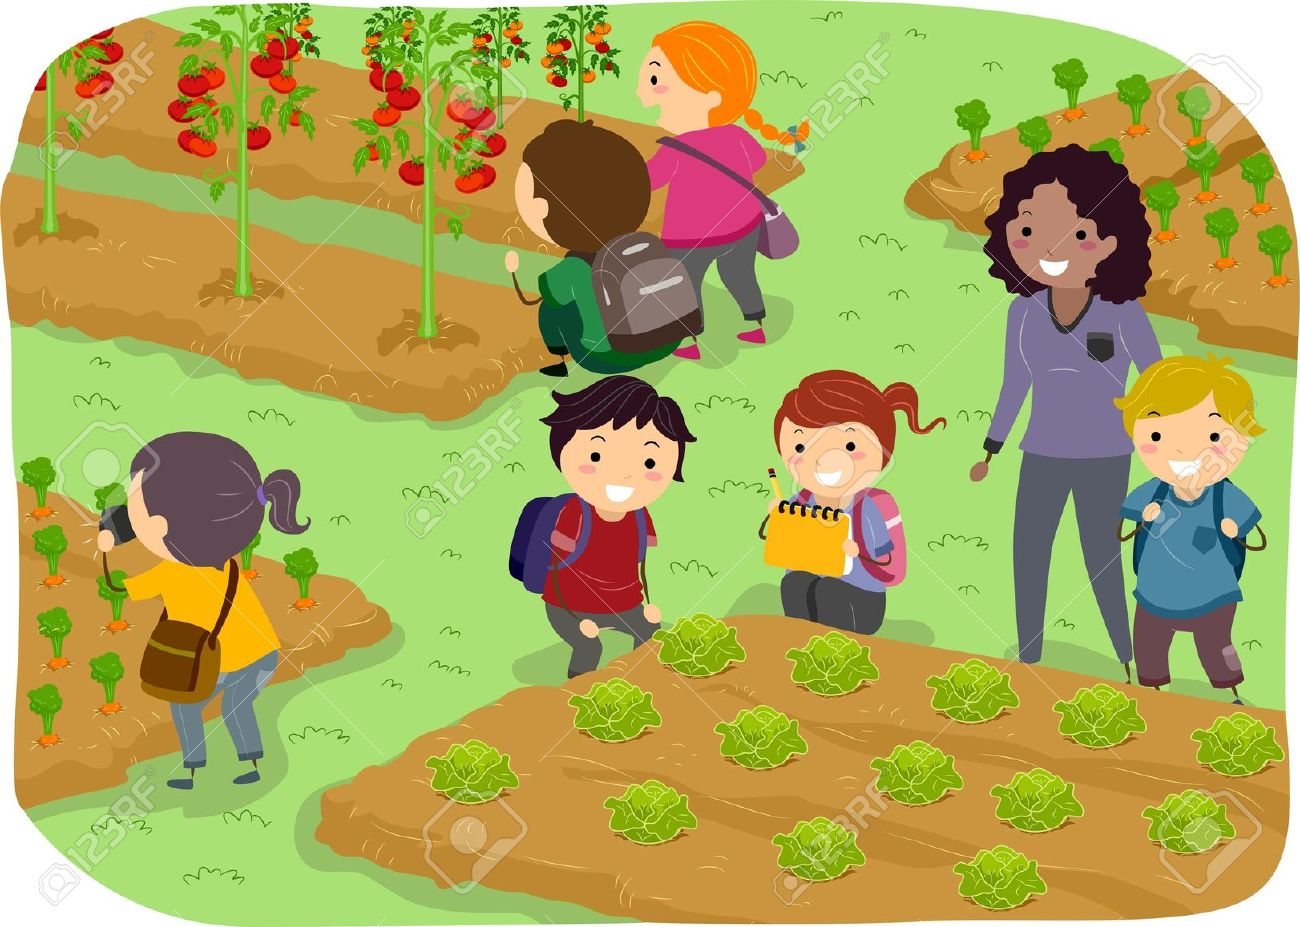 Vegetable garden kids drawing - Vegetable Garden Illustration Of Stickman Kids School Trip To A Vegetable Garden